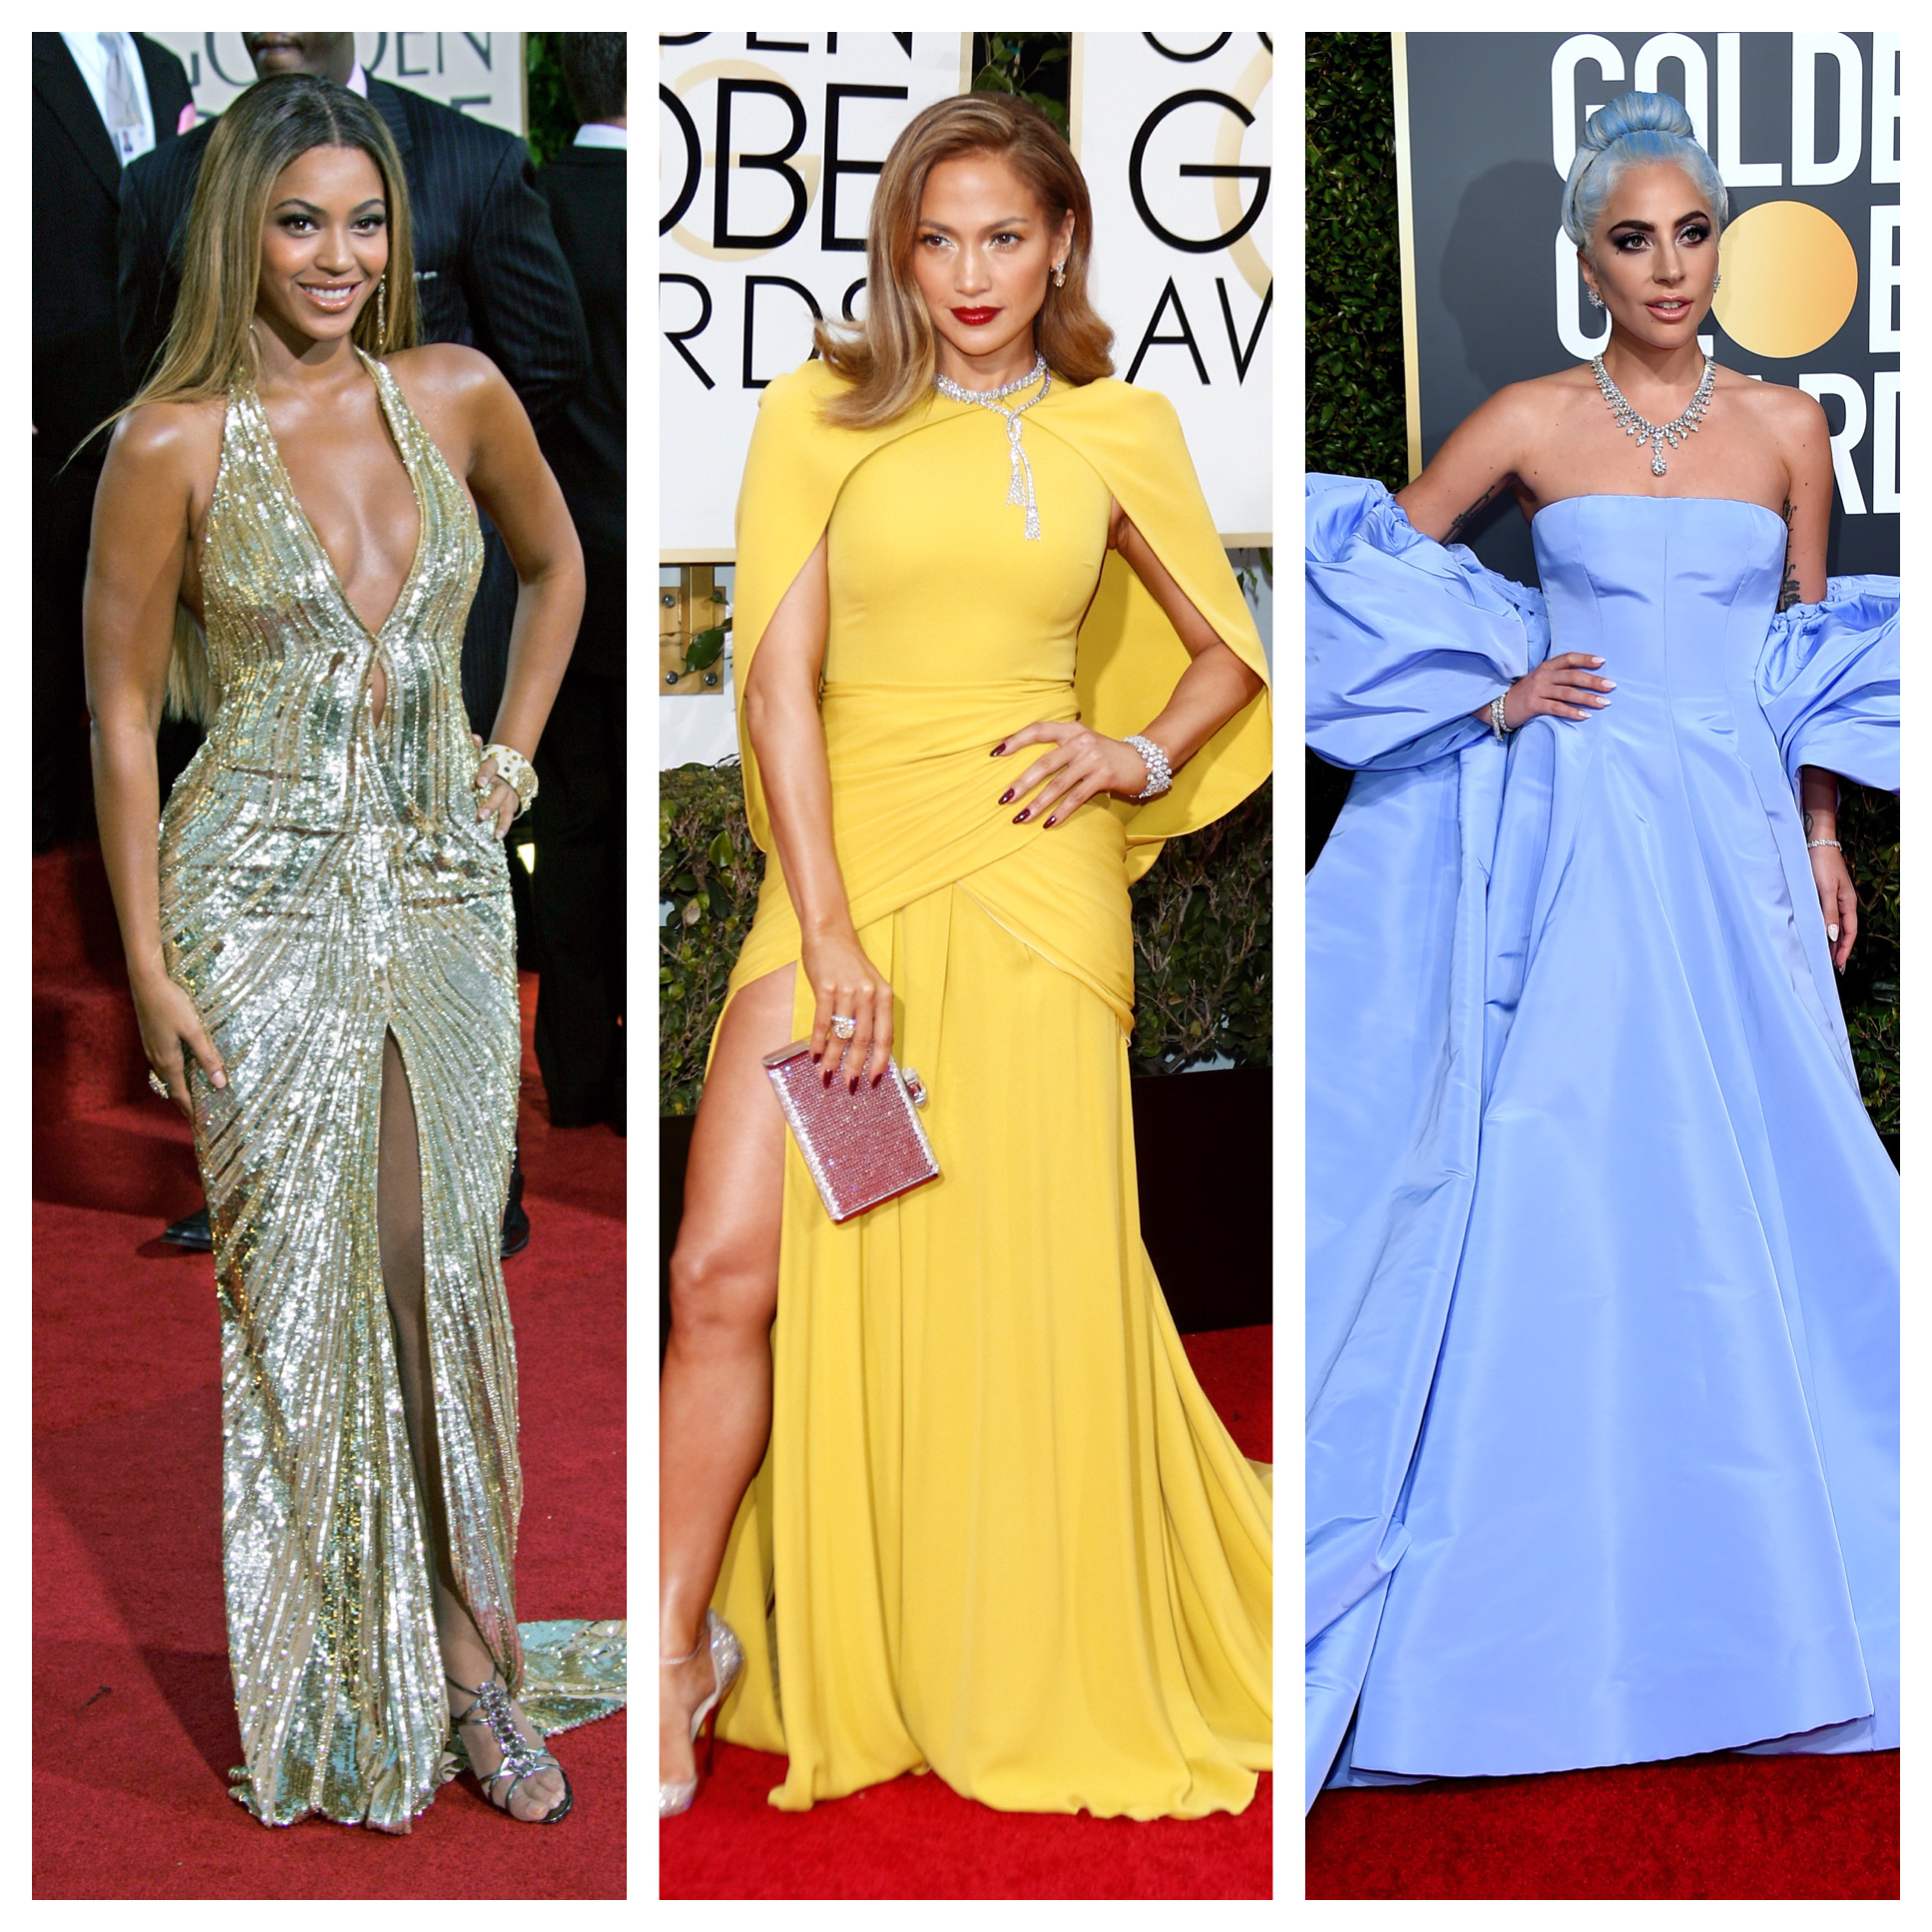 Golden Globes Fashion: Best Red Carpet Looks